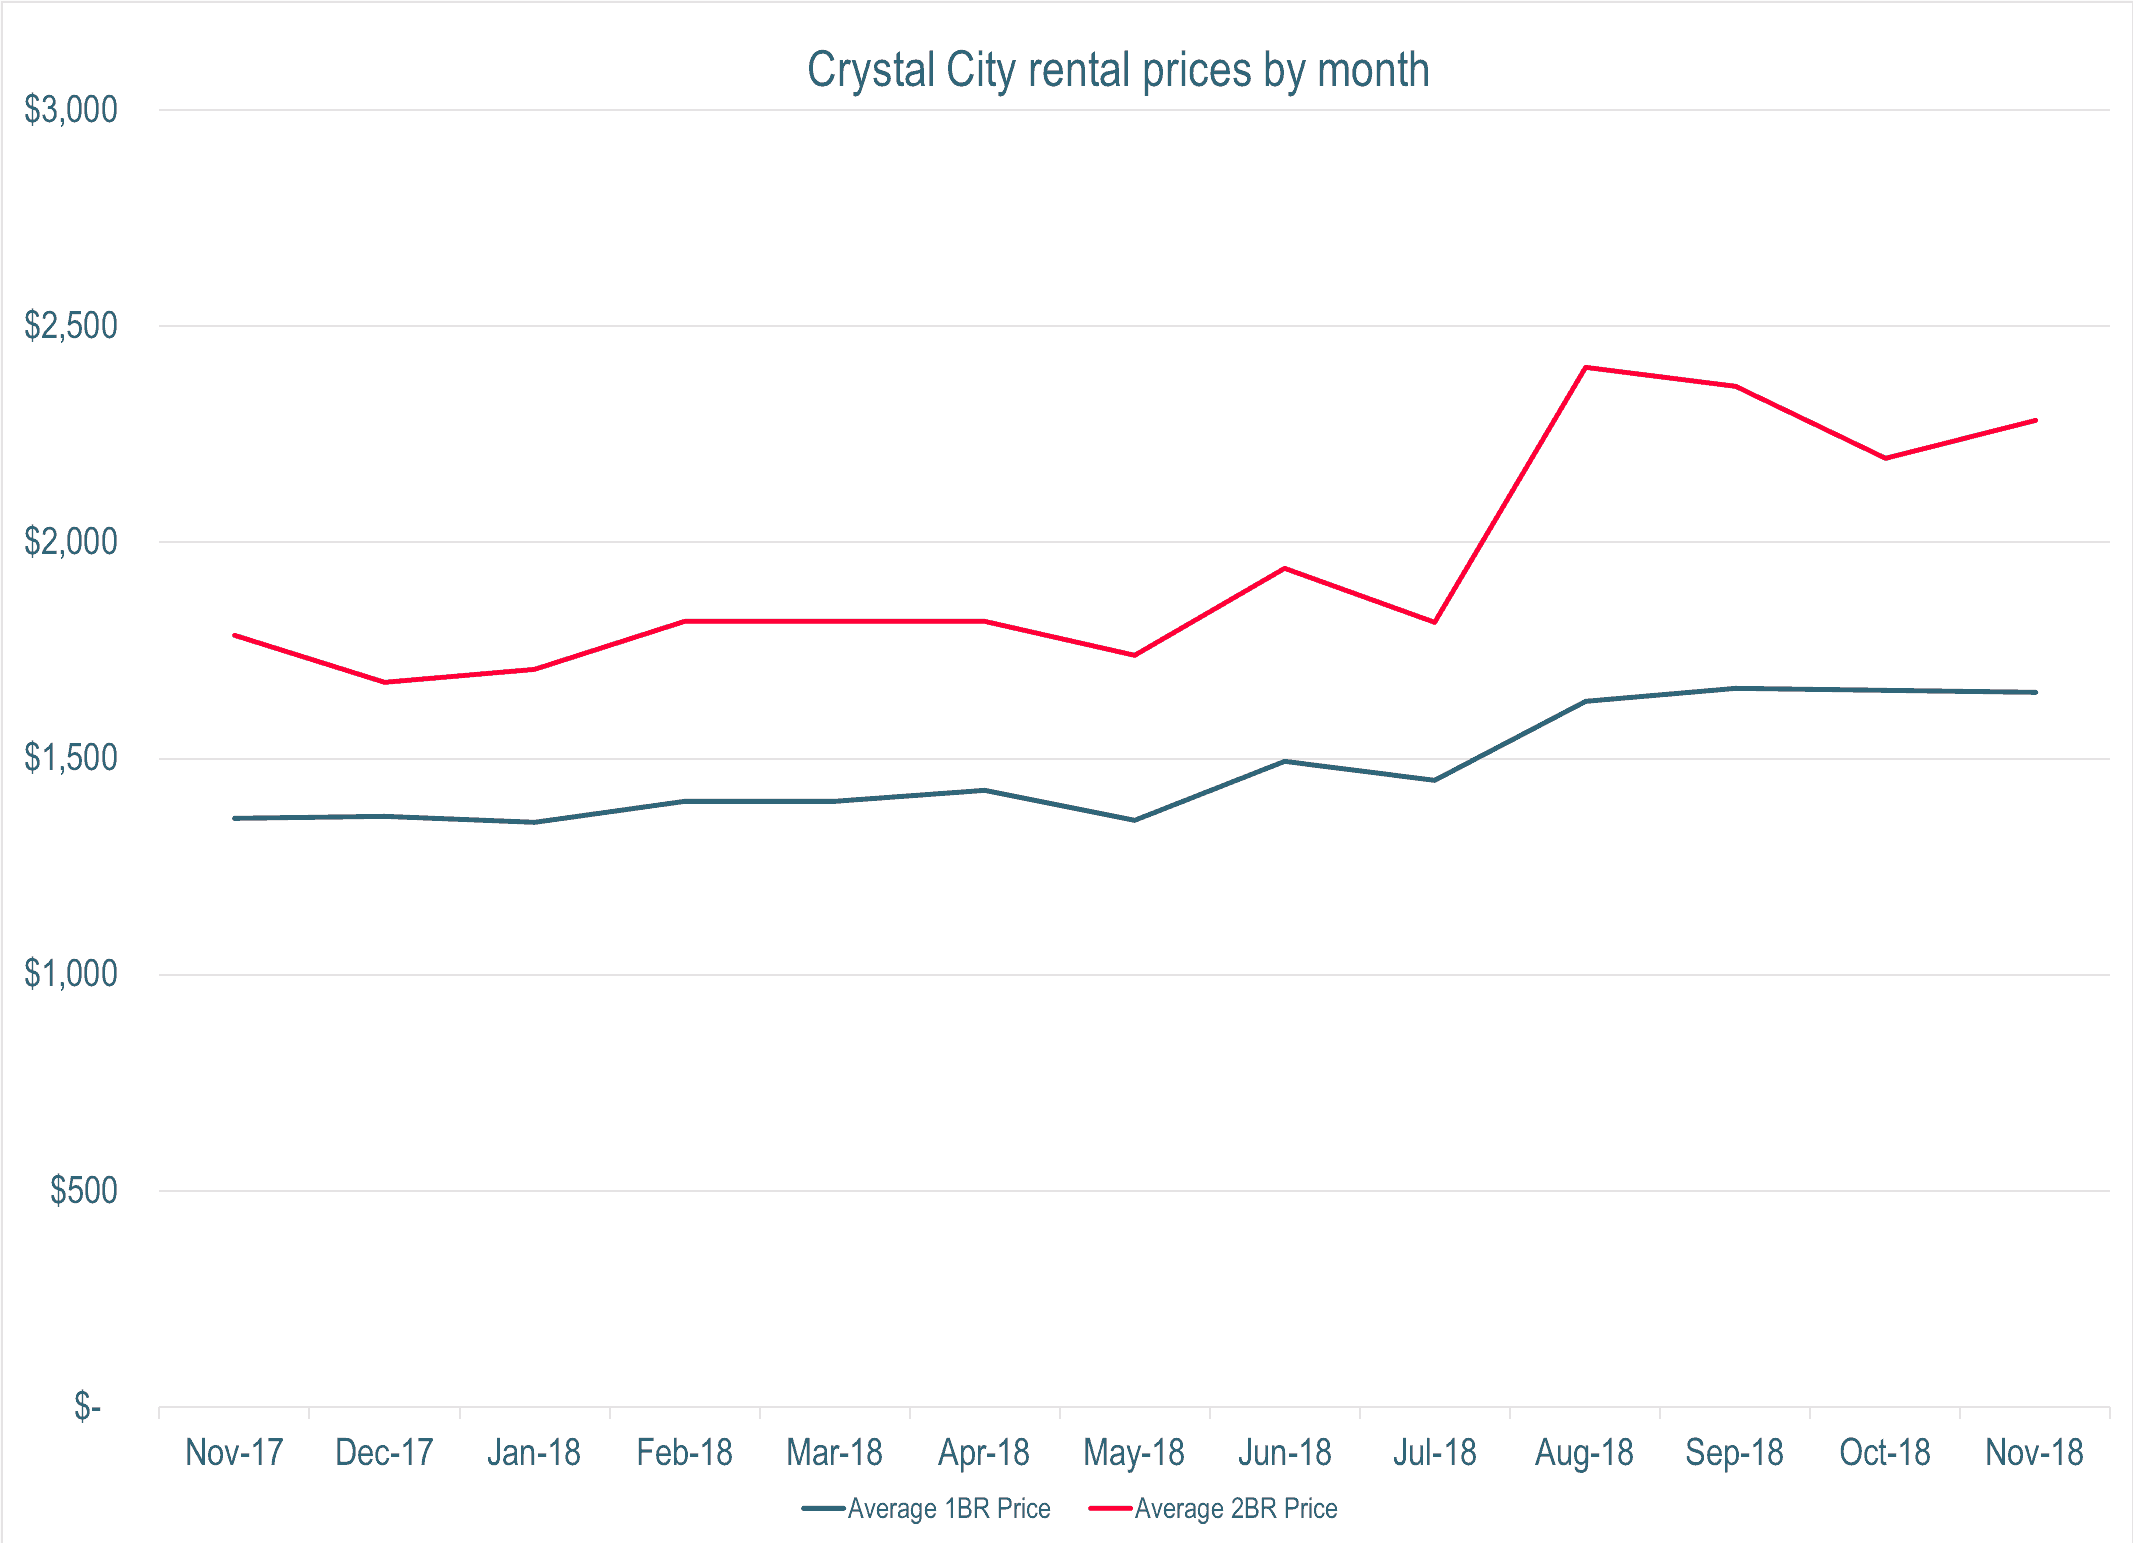 chart showing rental prices in crystal city